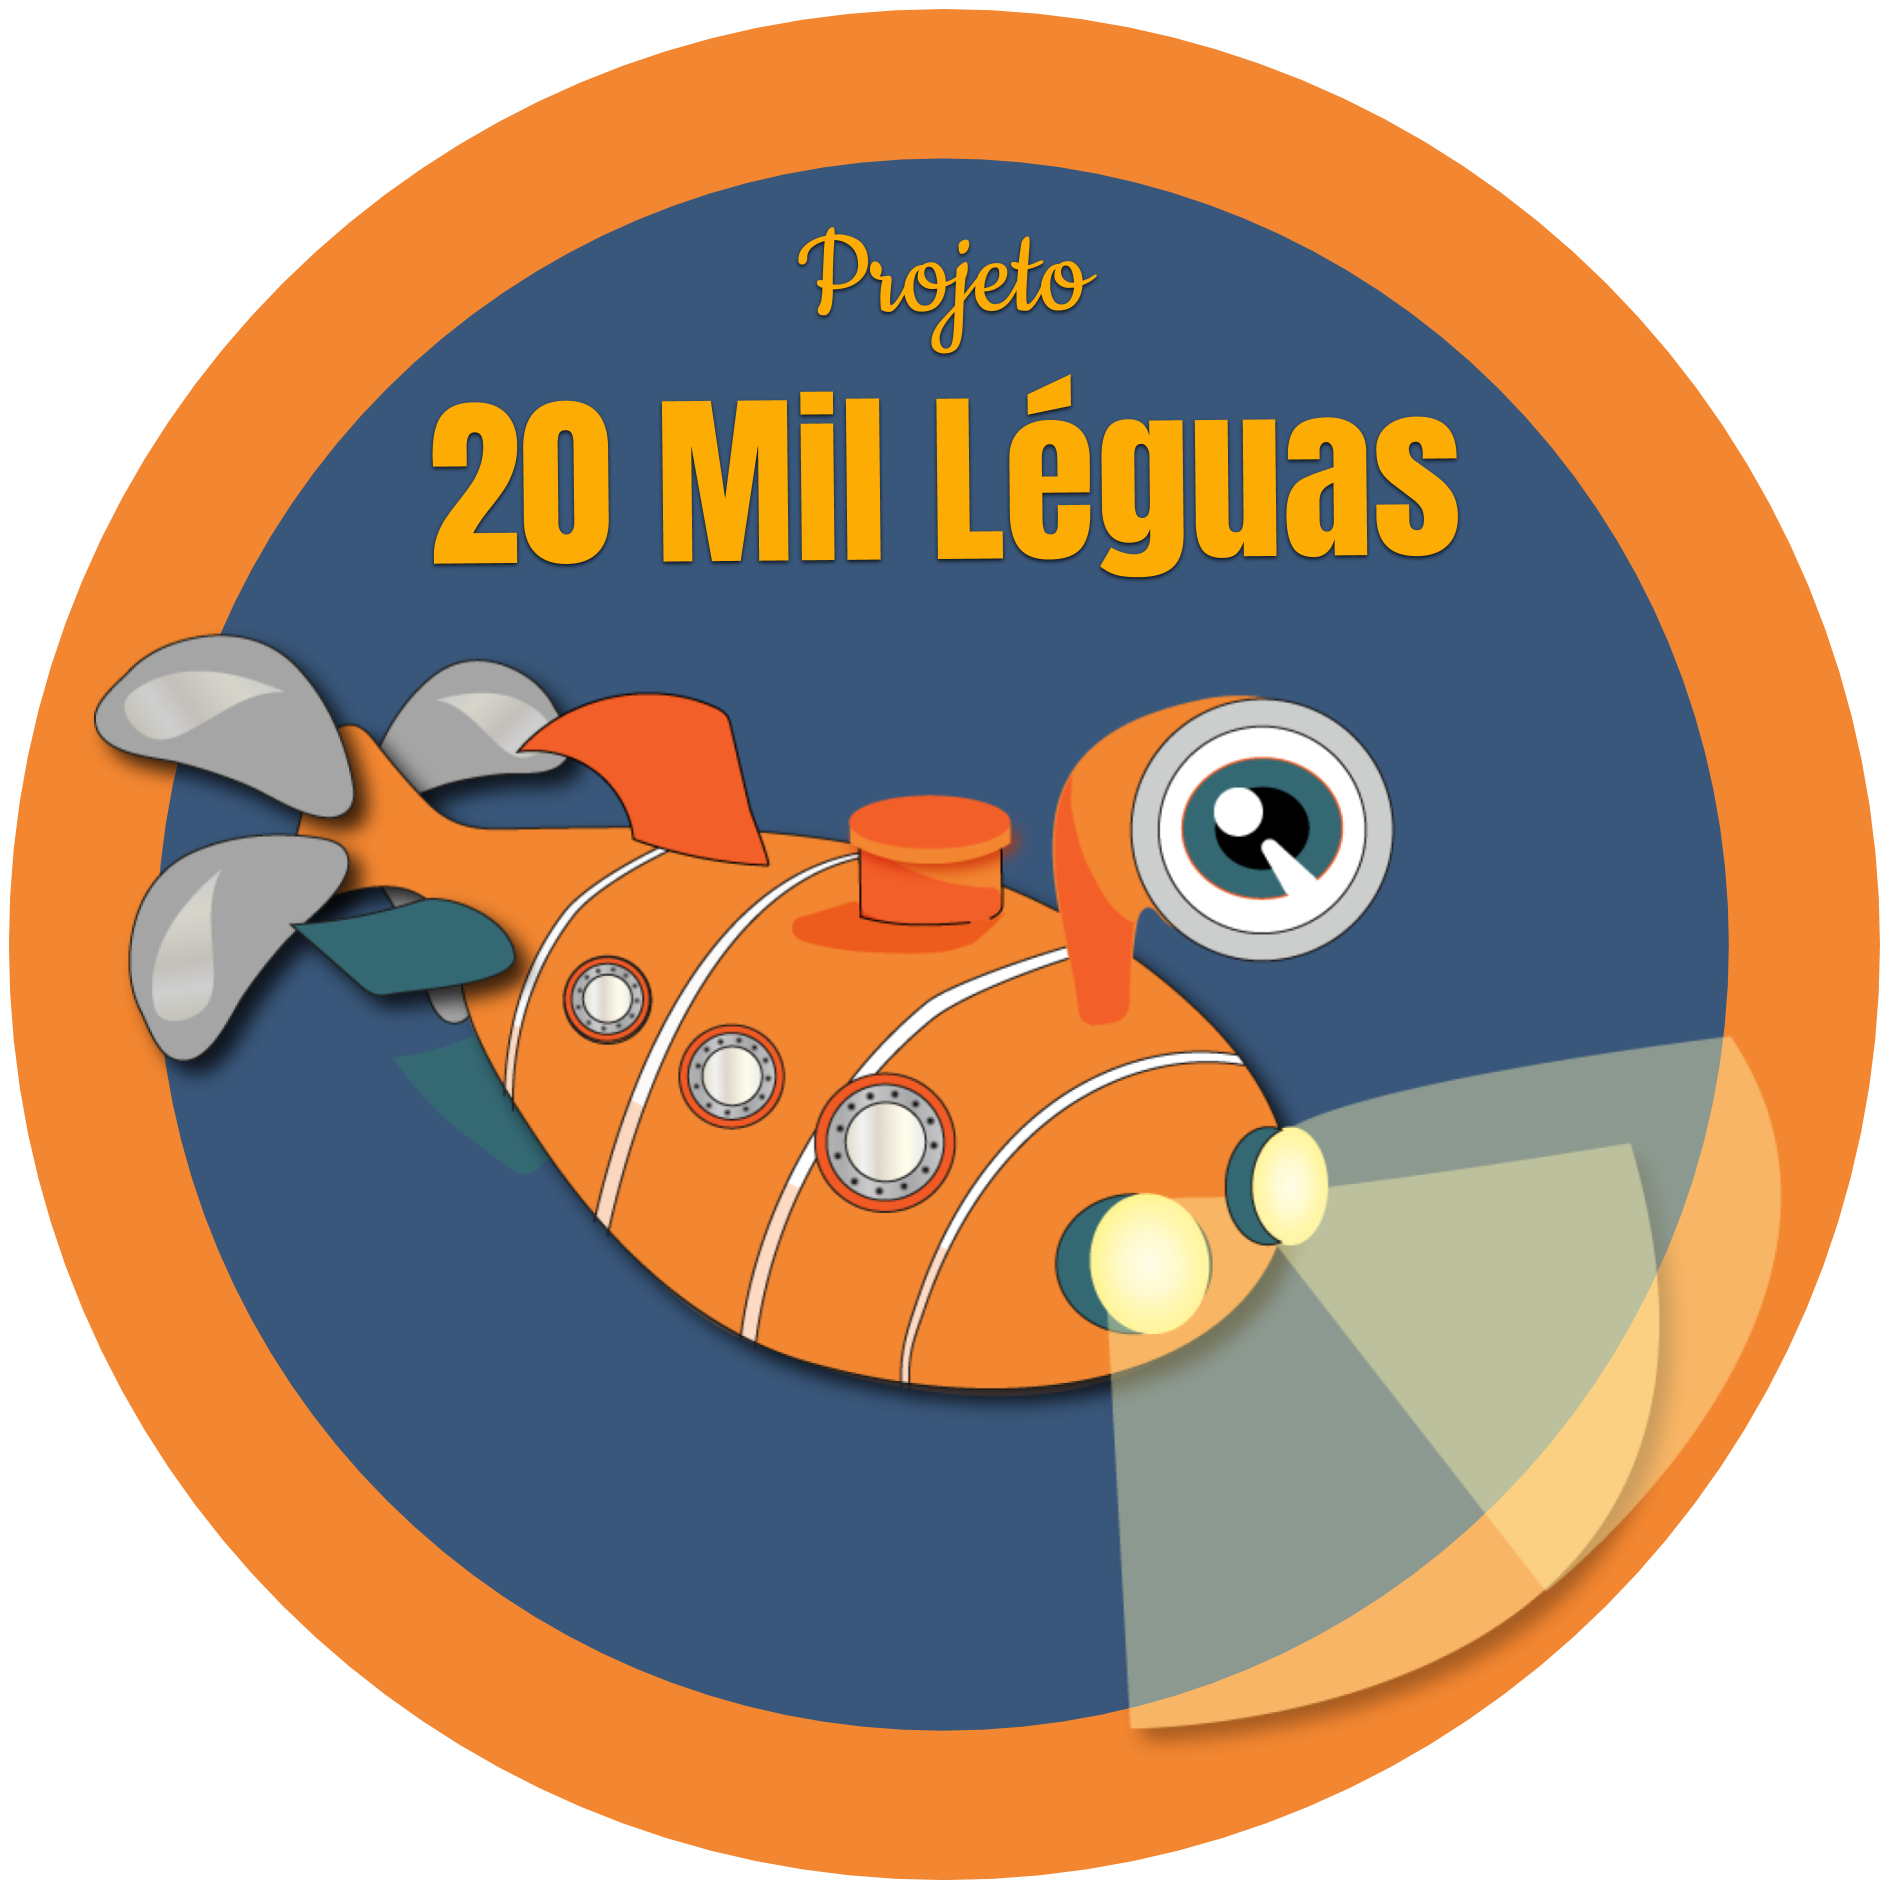 20 Mil Léguas (20 Thousand Leagues)